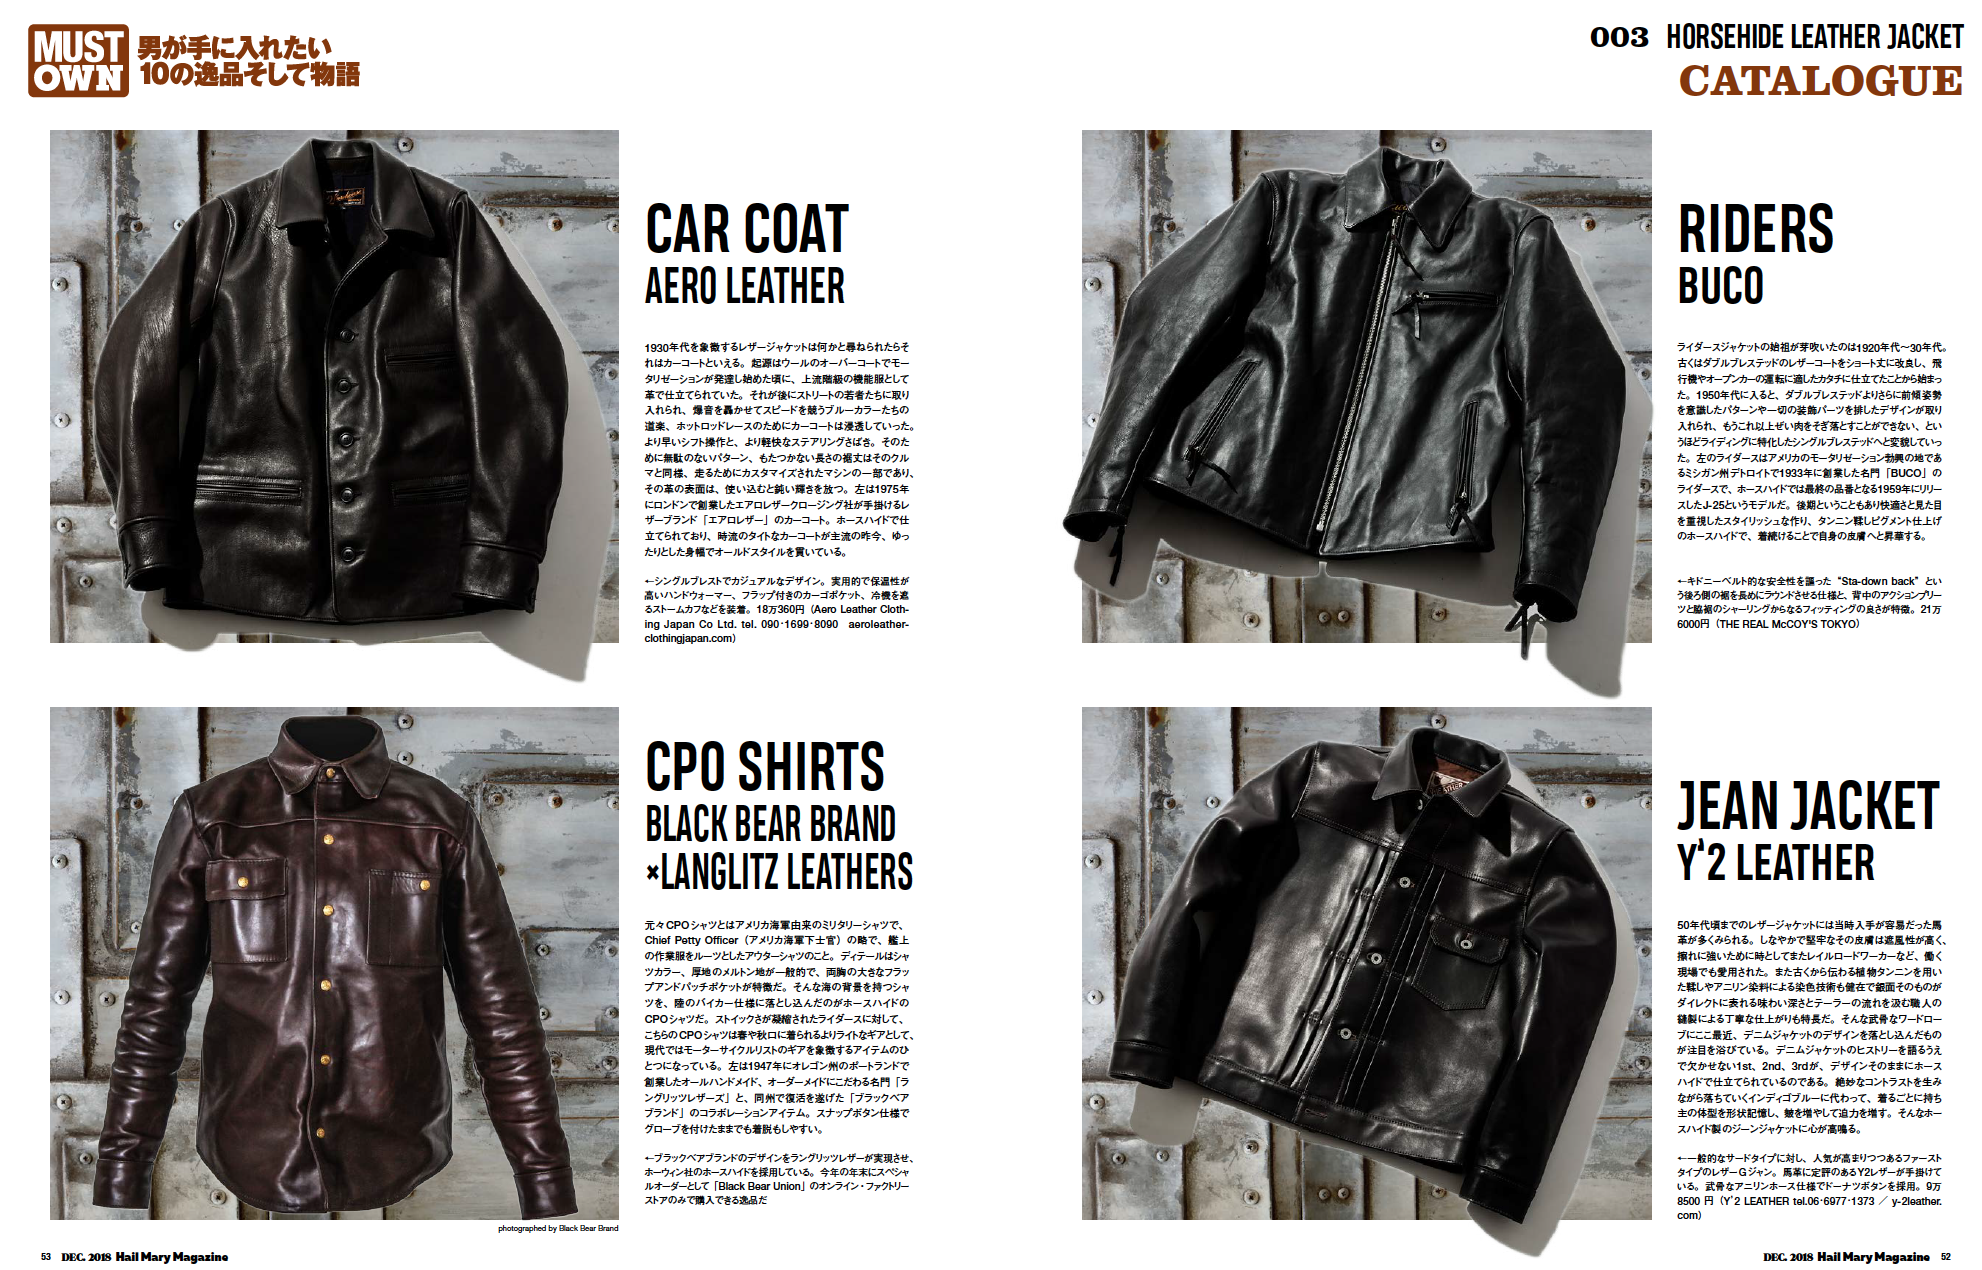 Black Bear Brand horsehide jacket in Hail Mary Magazine